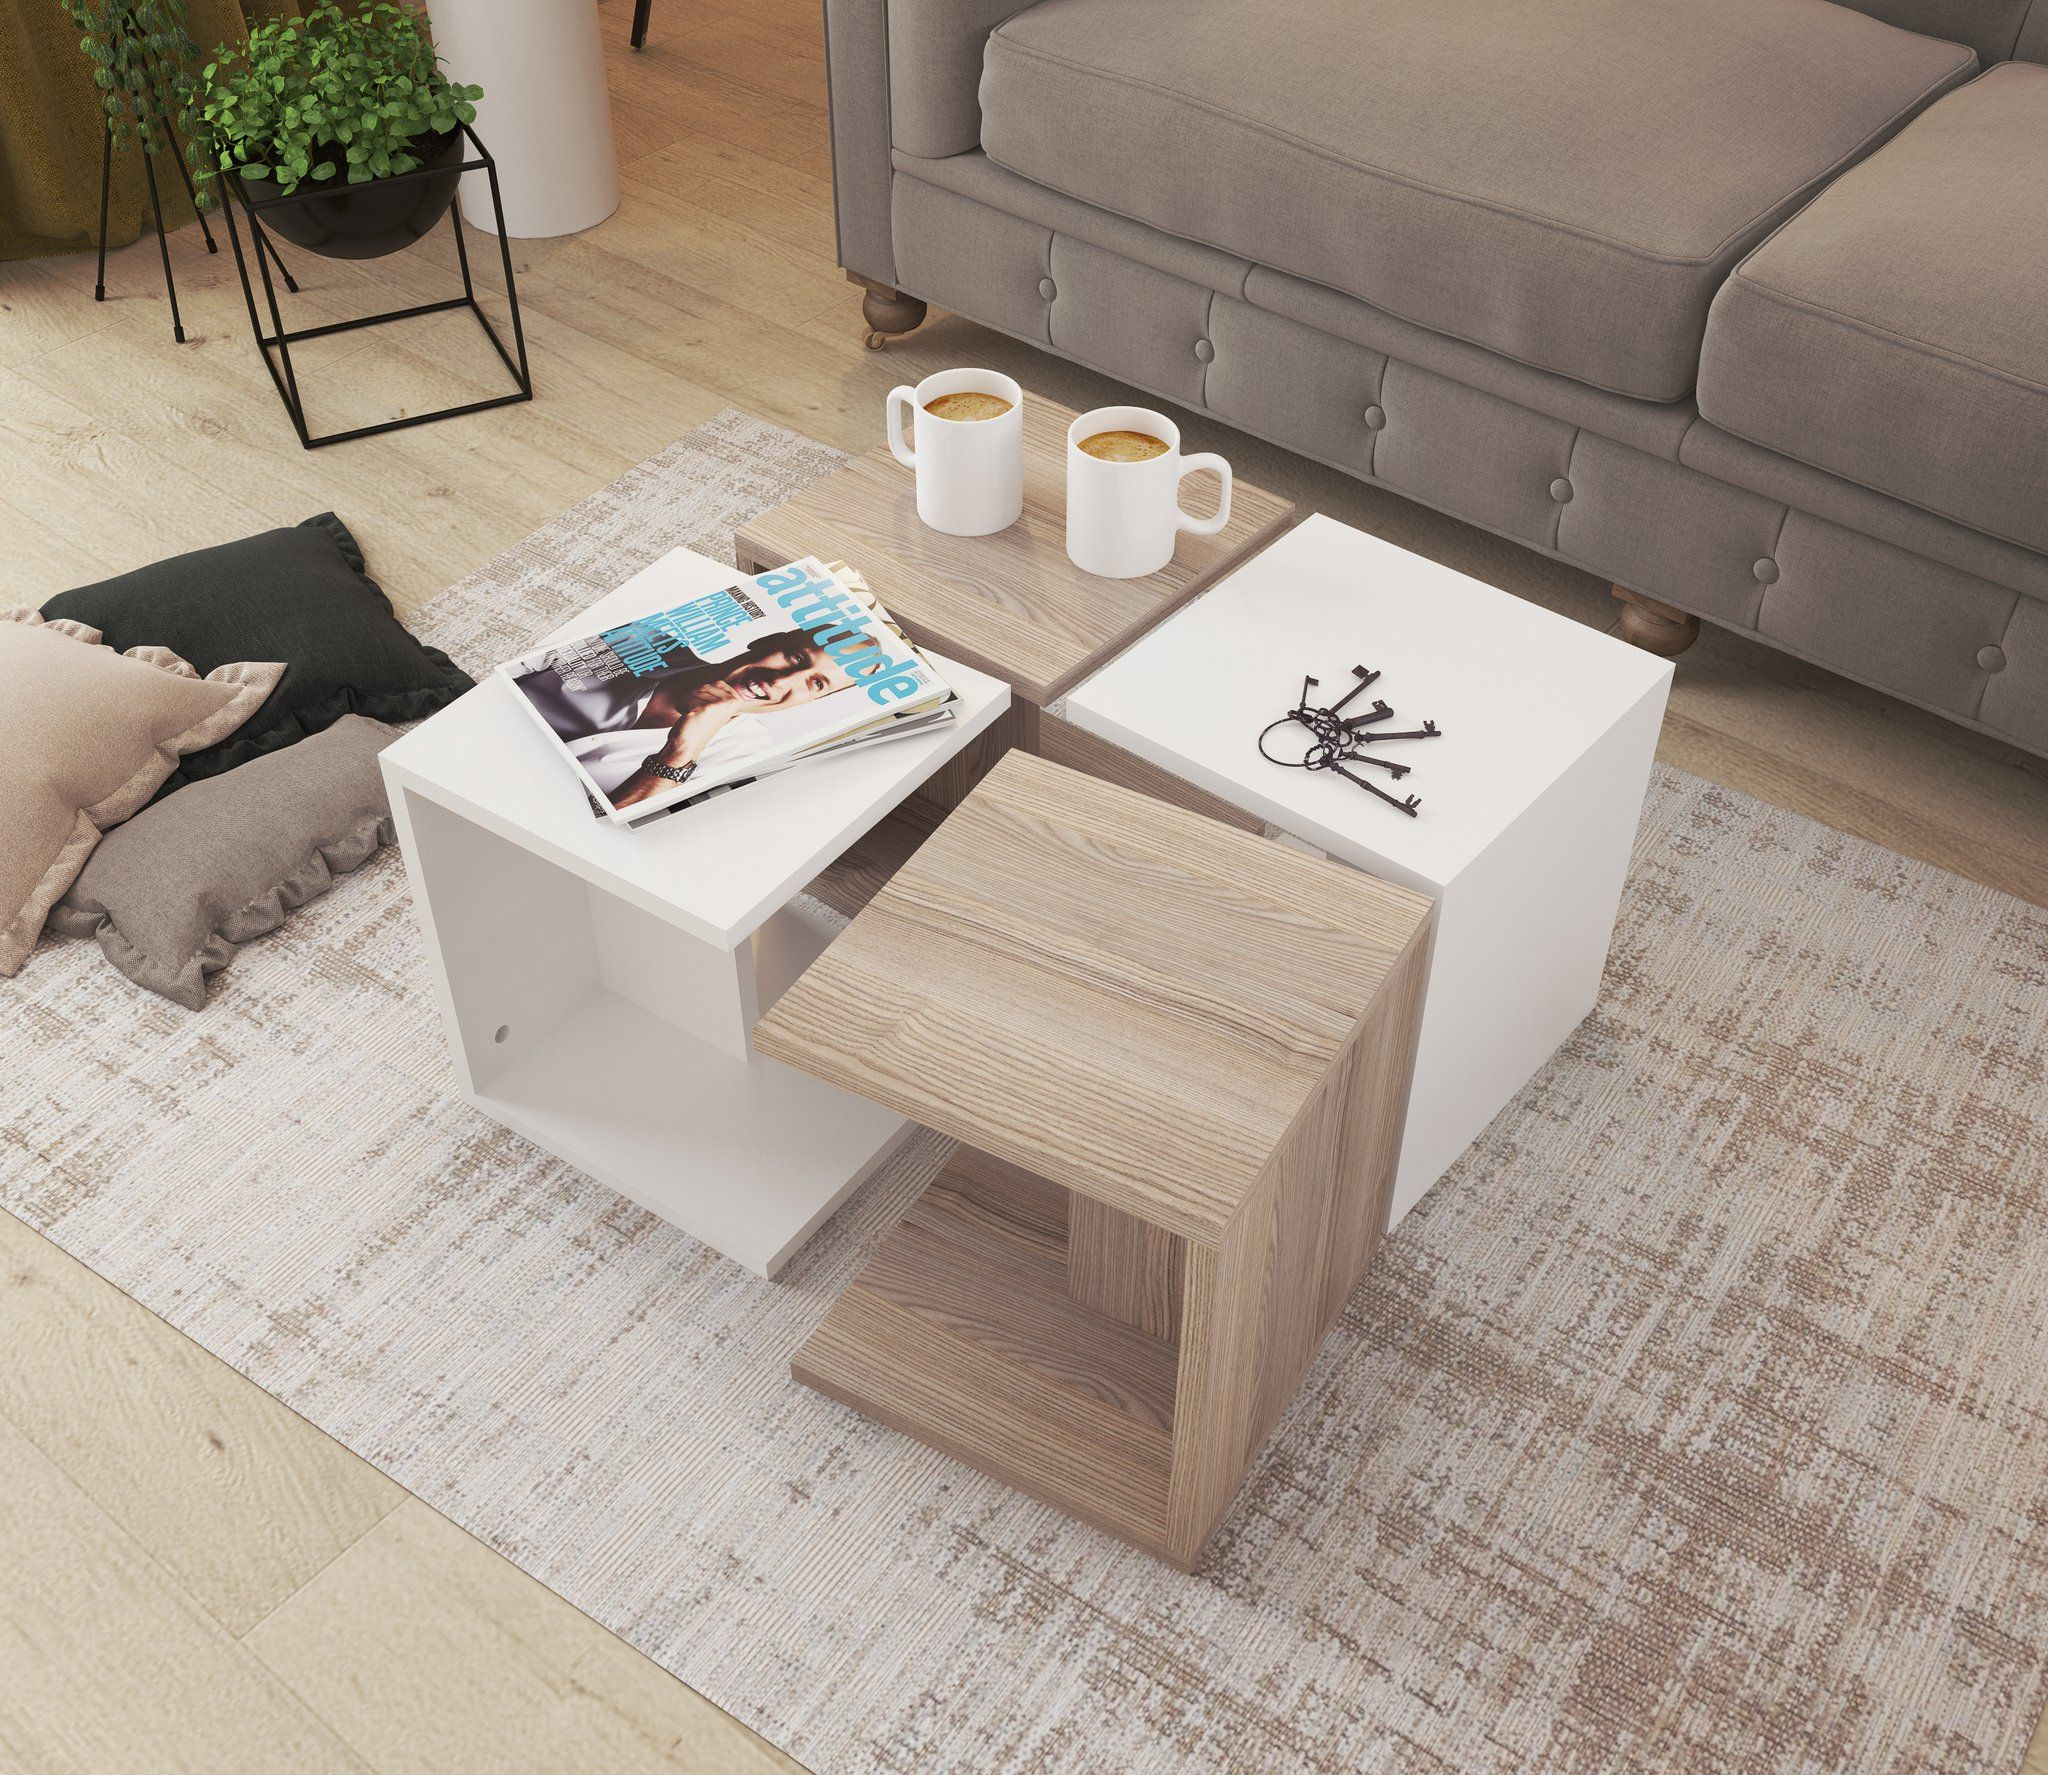 Sparr Solid Wood Frame Coffee Table In 2021 Brown Coffee Table Round Coffee Table Round Wood Coffee Table [ 1133 x 1600 Pixel ]